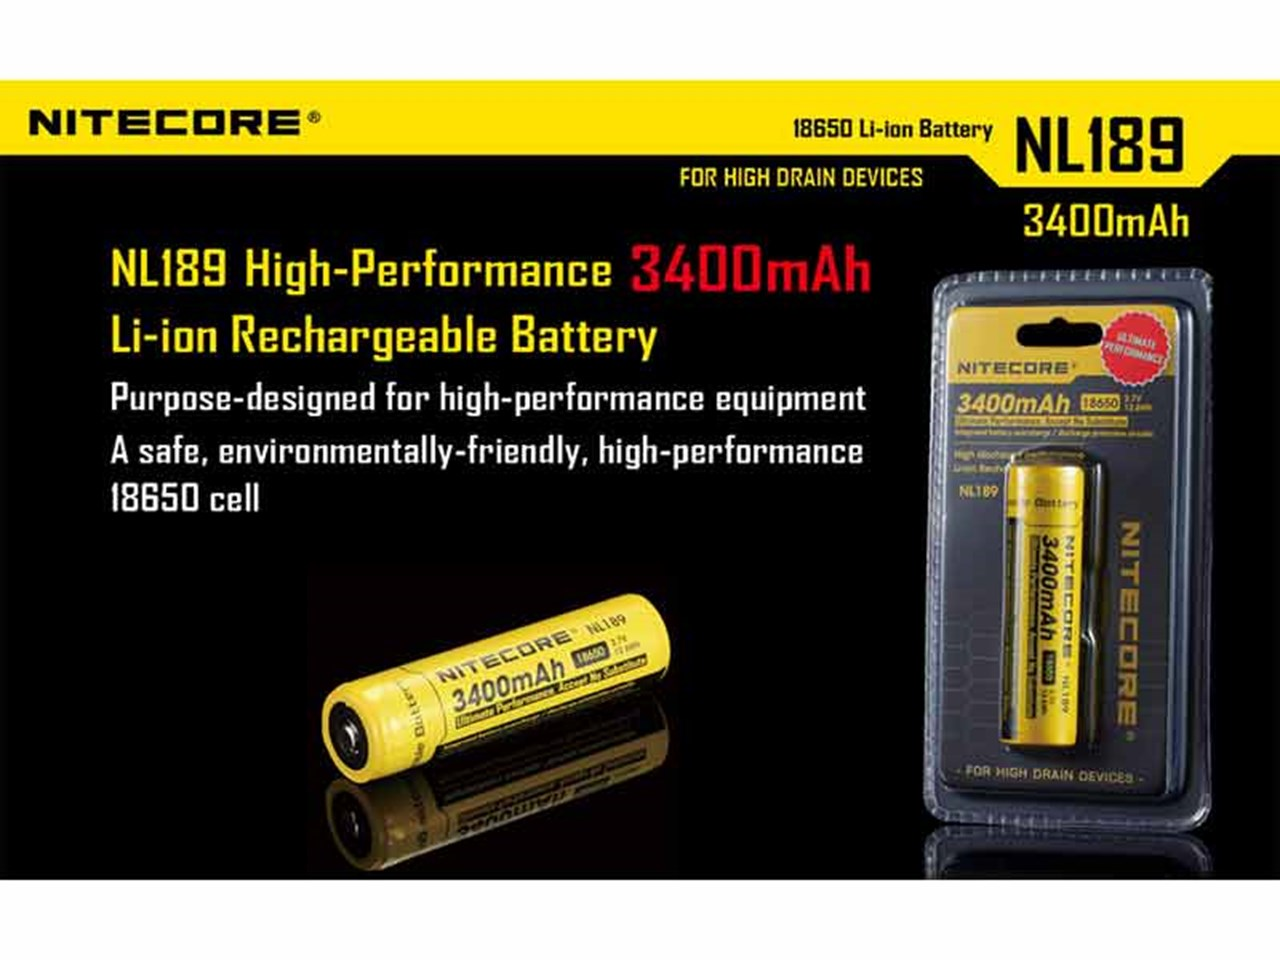 Nitecore Nl1834 36v Li Ion Rechargeable Battery 3400mah 18650 7v Liion W Protection Circuit Authorised Reseller